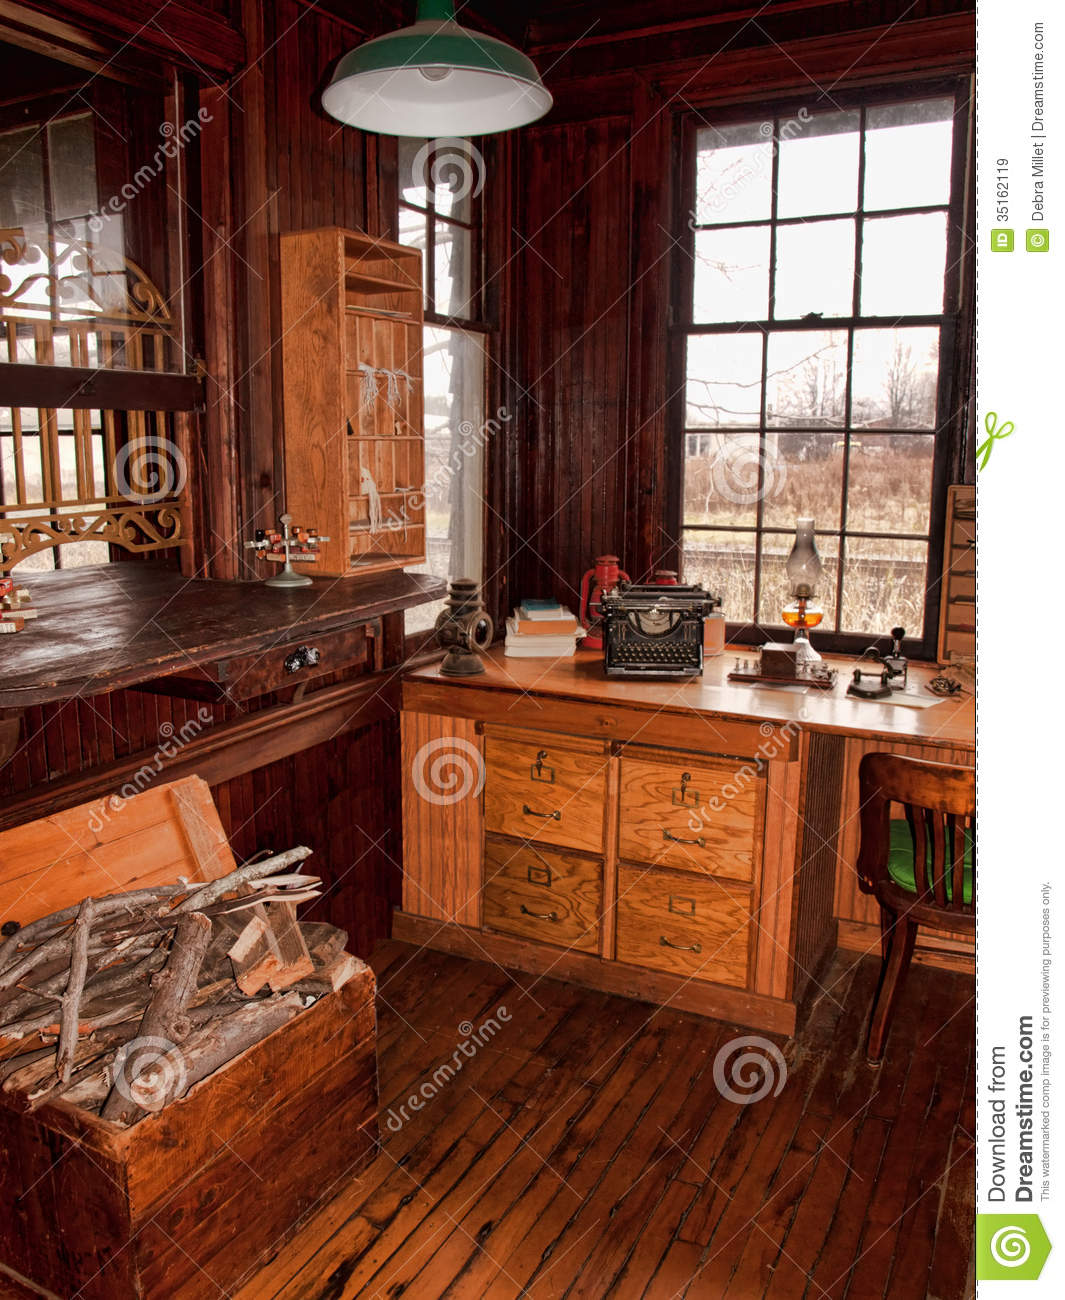 Old railway depot stock image Image of office desk